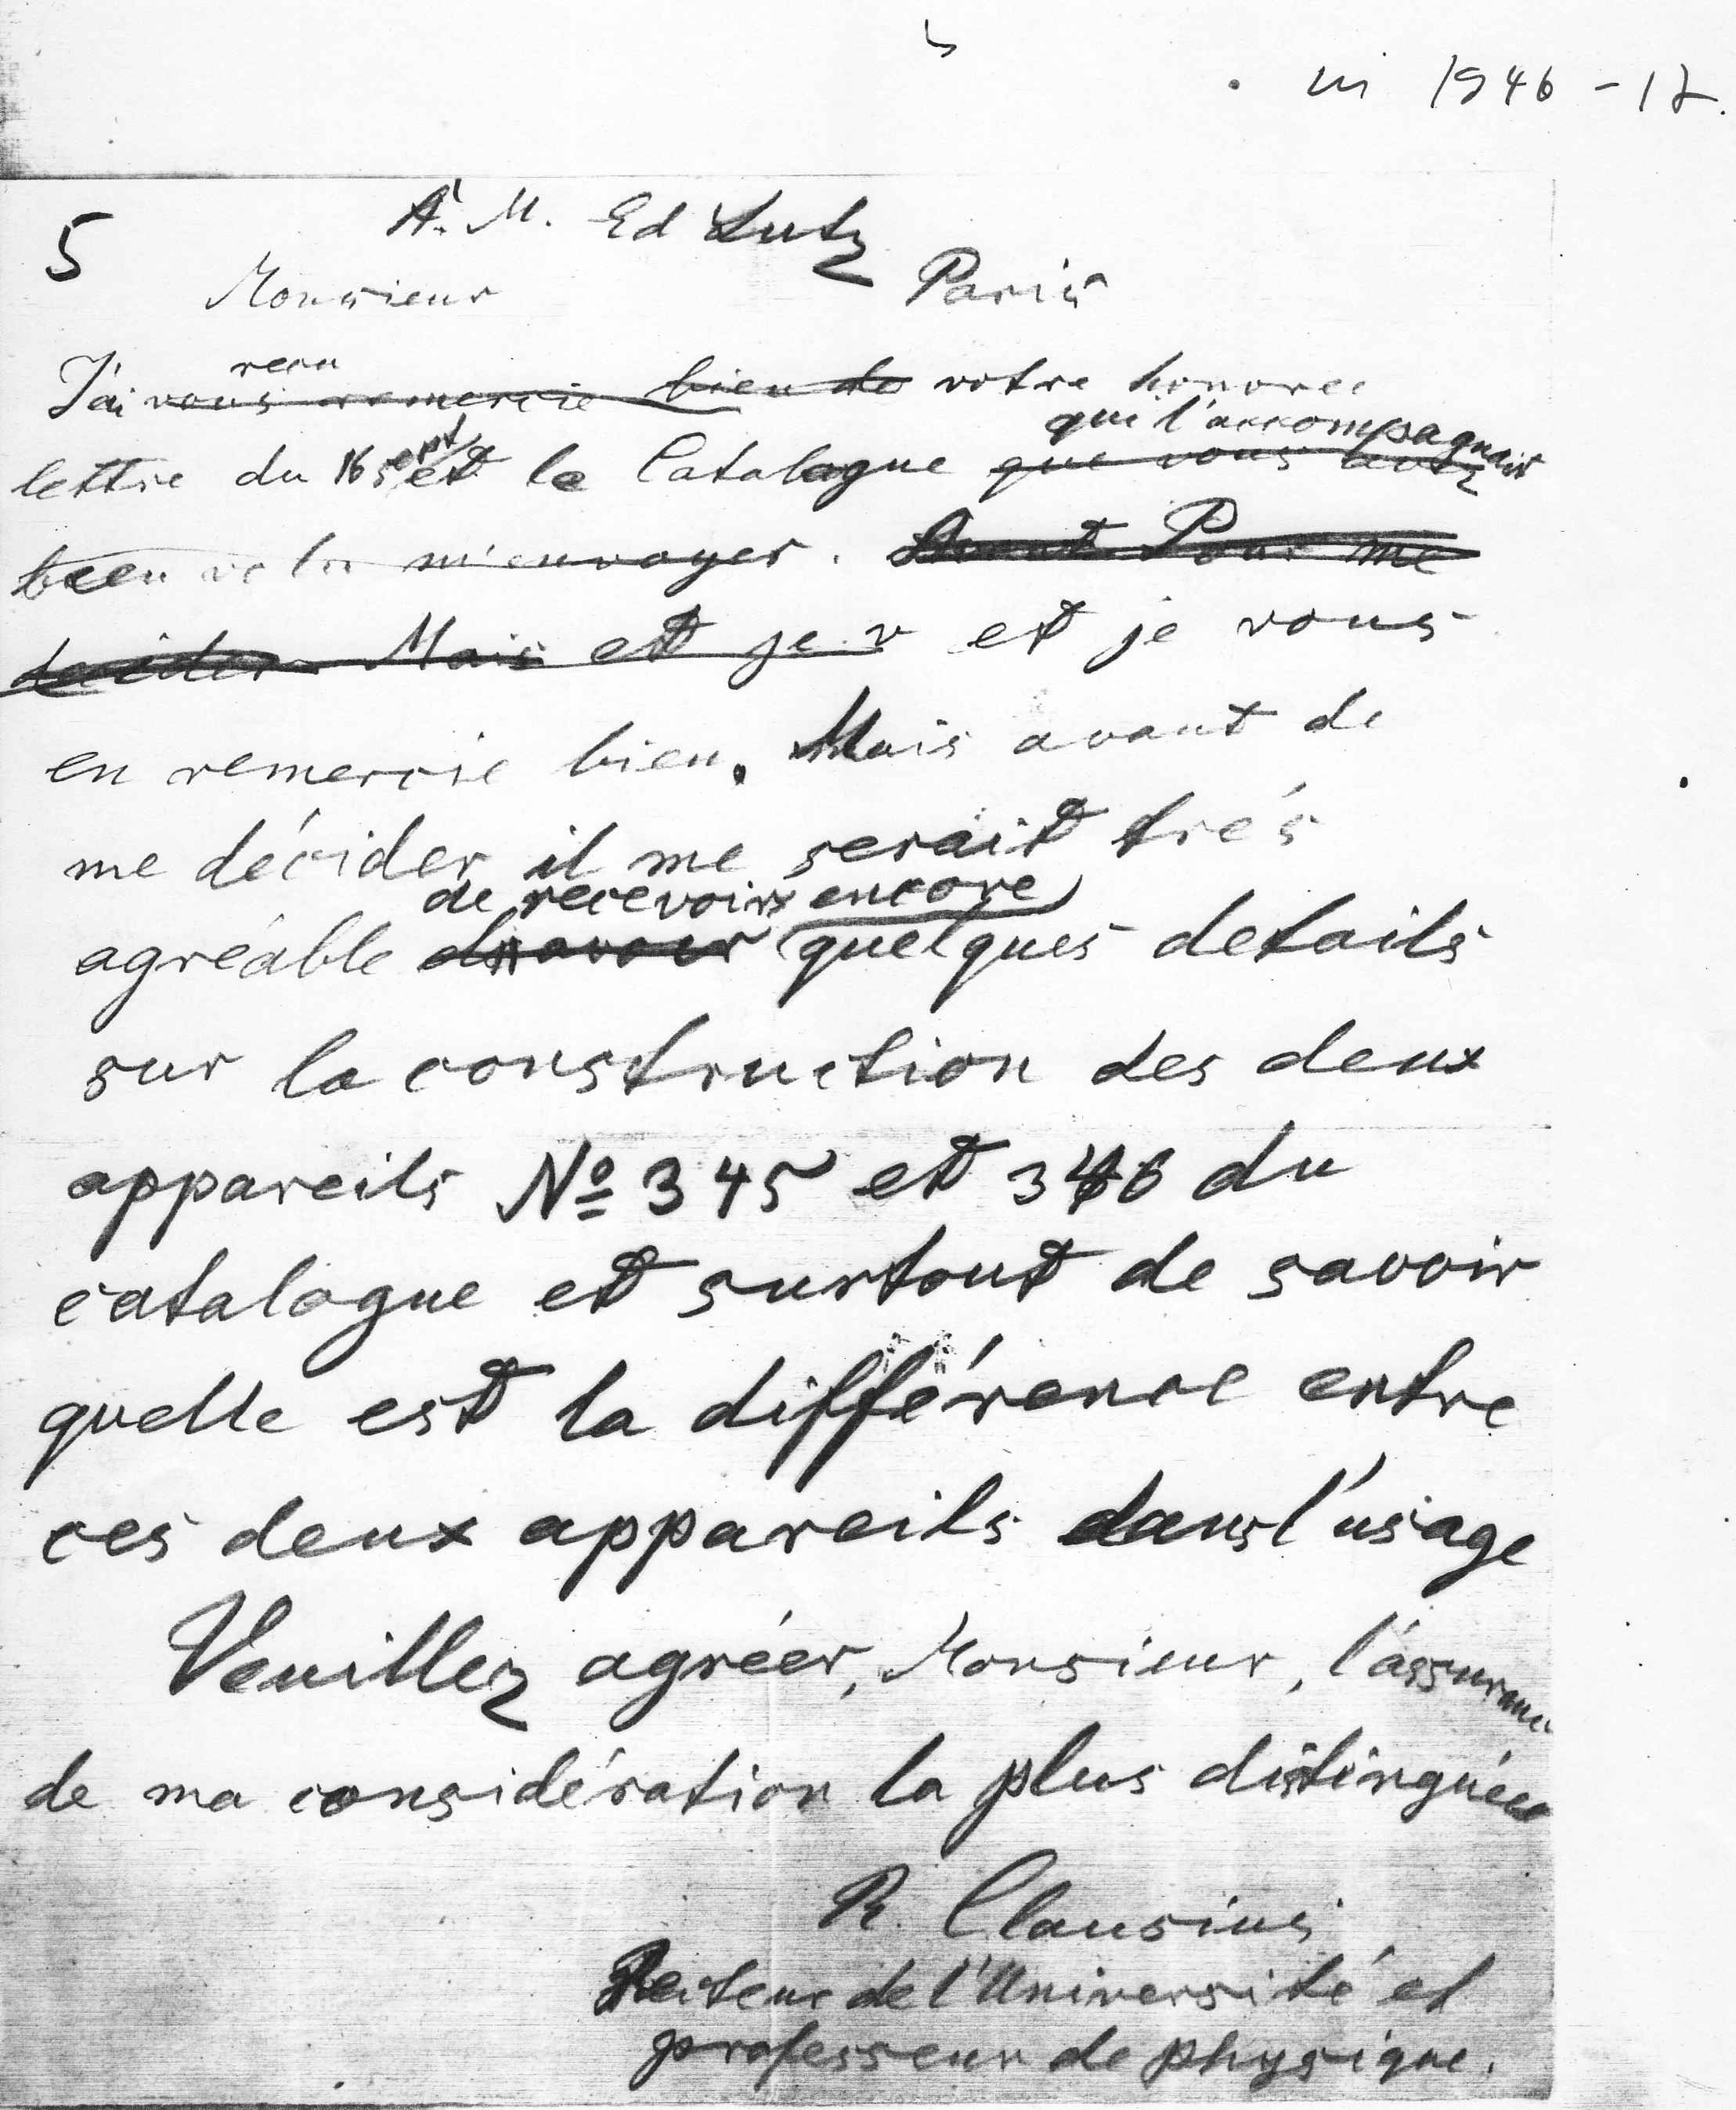 Draft of a letter in french by Clausius